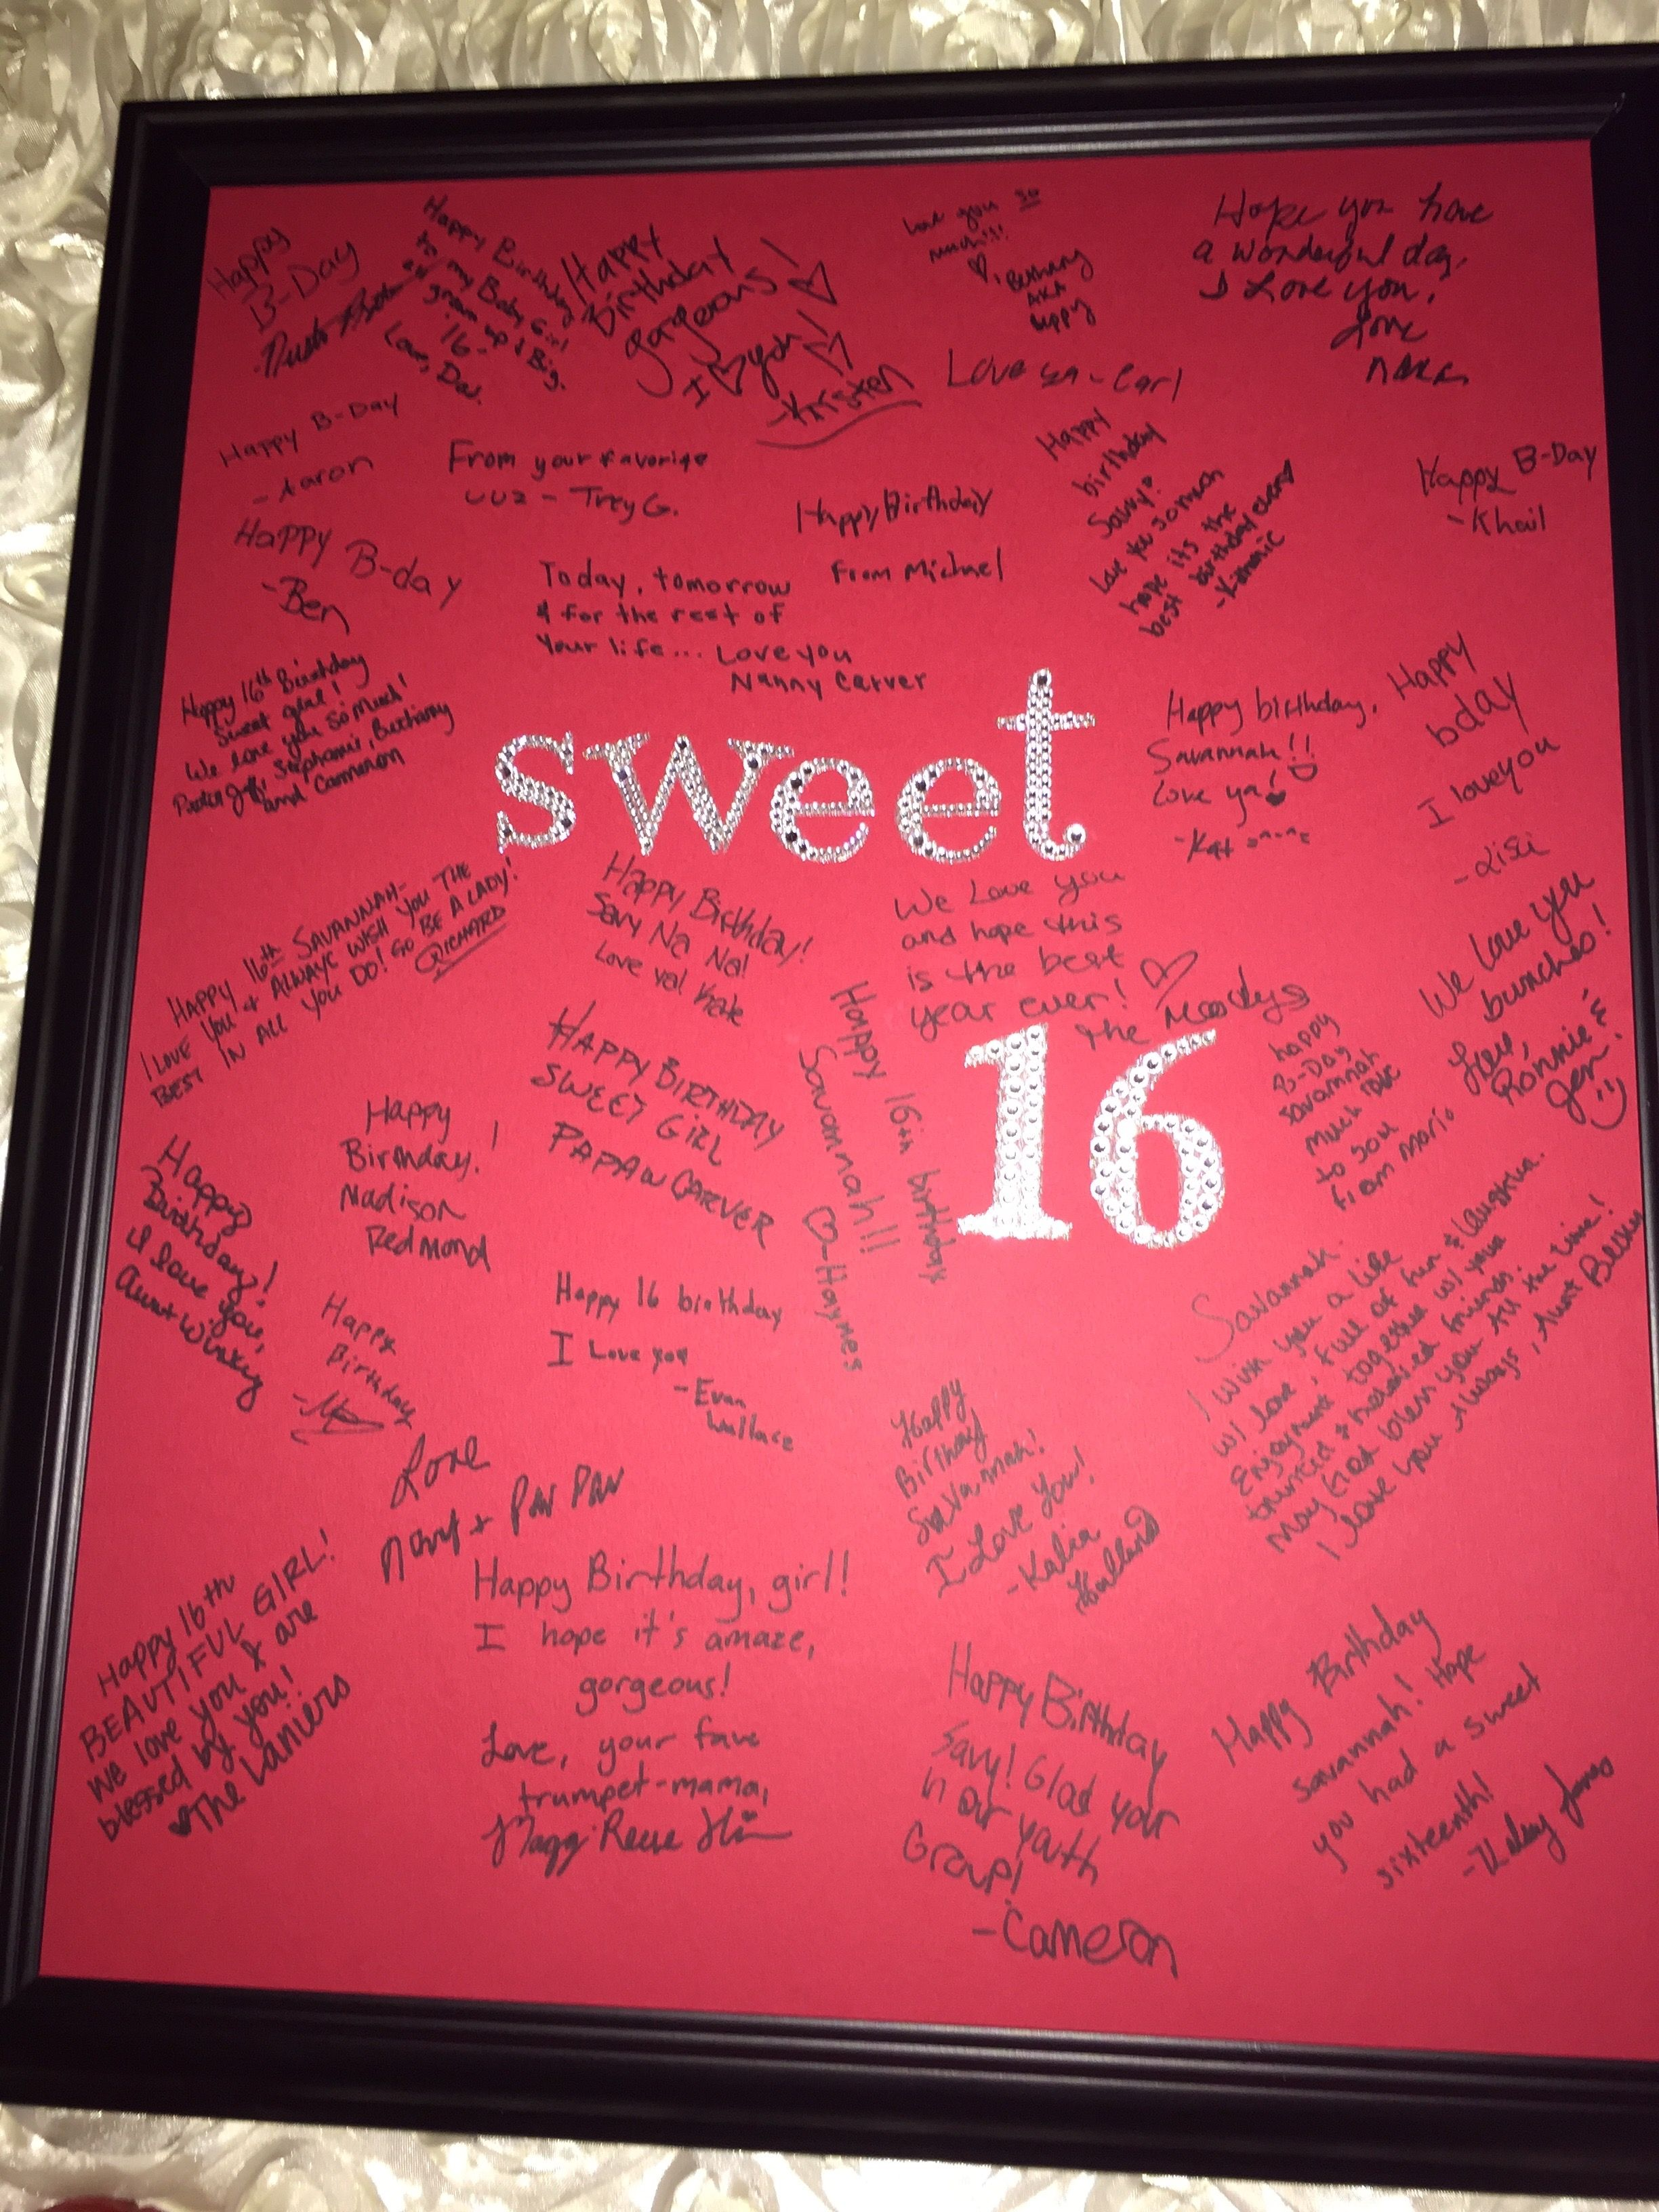 sweet 16 keepsake autograph photo frame made for my nieces birthday party great keepsake